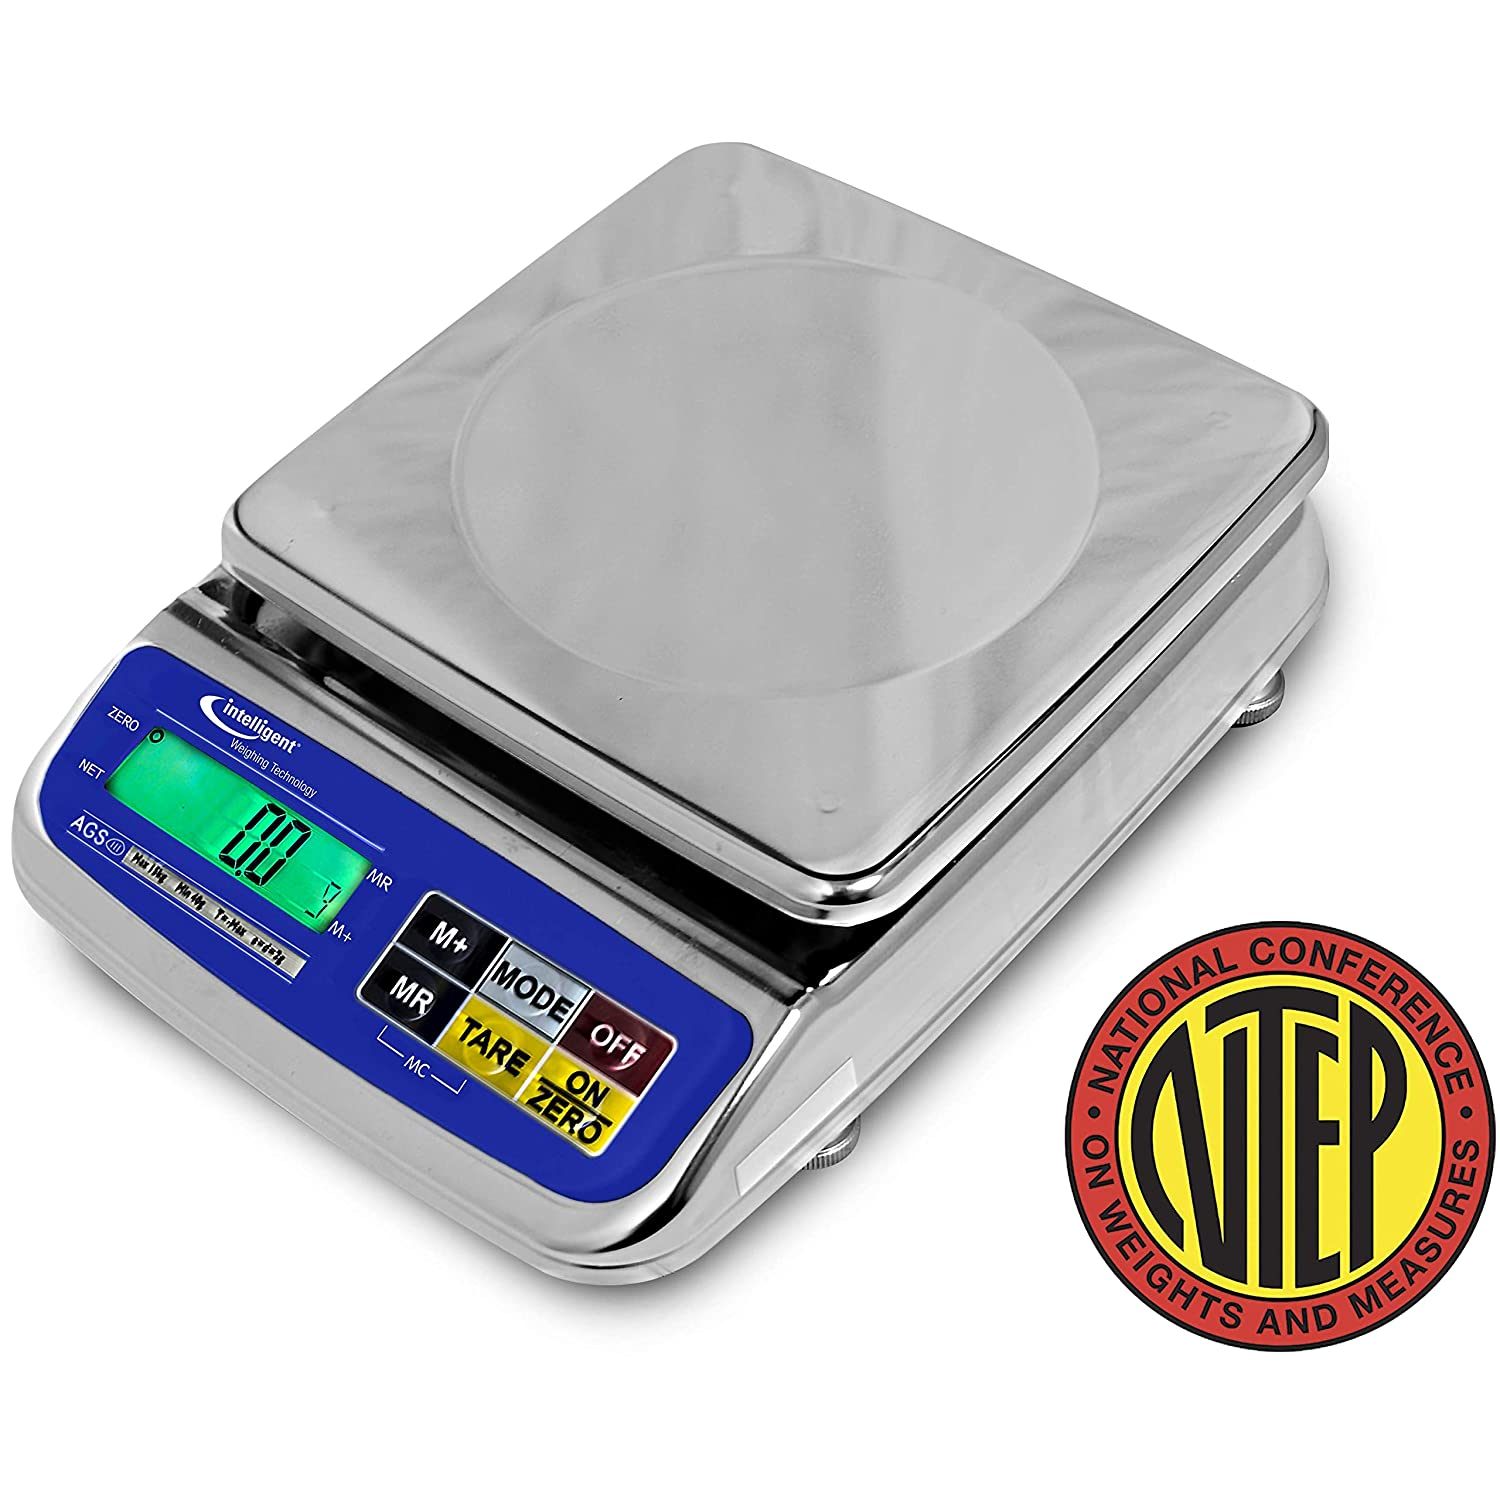 Stainless Steel Portion Control Scale Intelligent AGS-600 600 g x 0.2 g NTEP